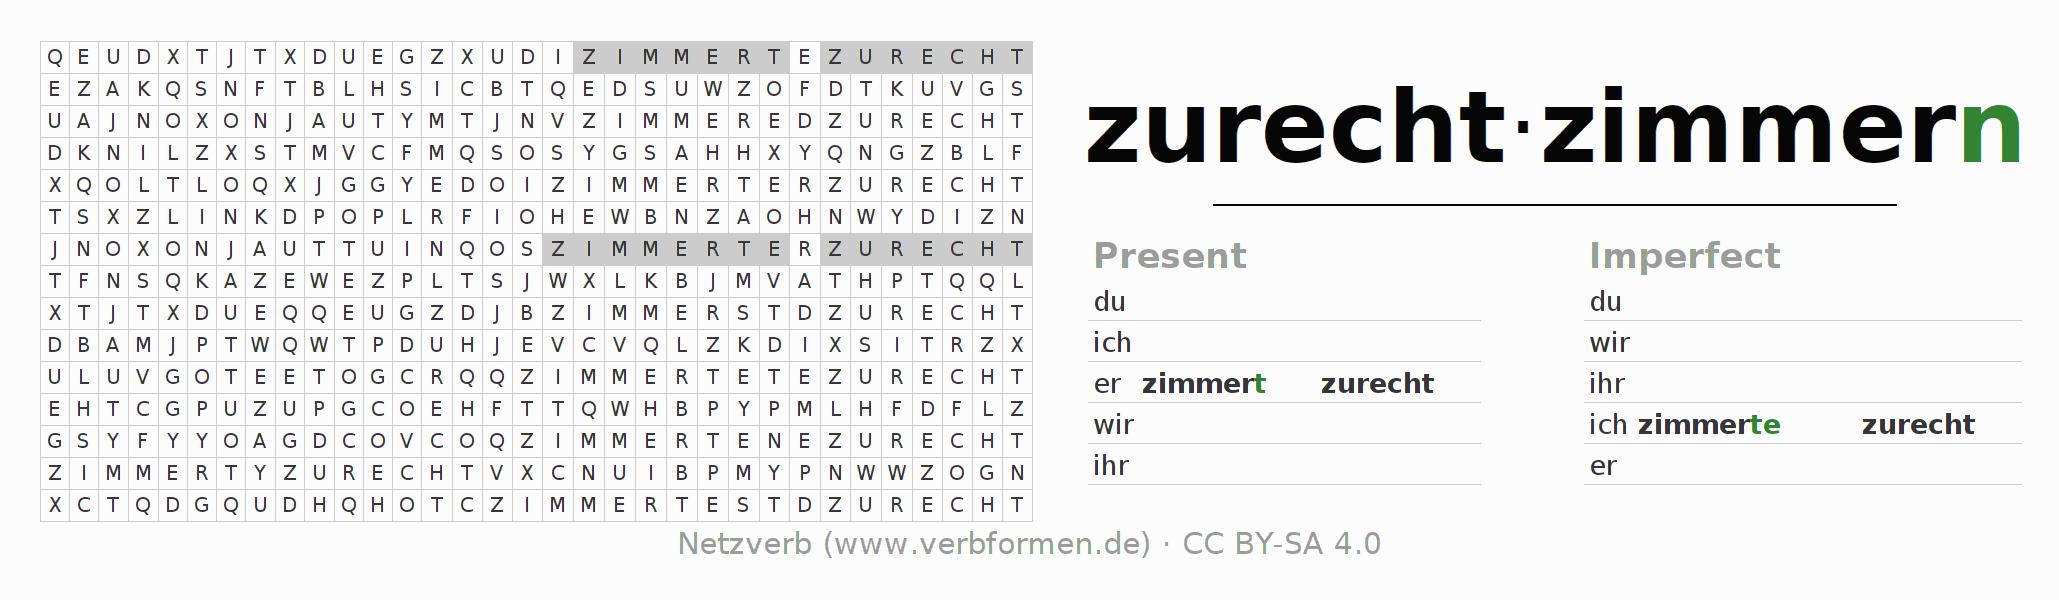 Word search puzzle for the conjugation of the verb zurechtzimmern